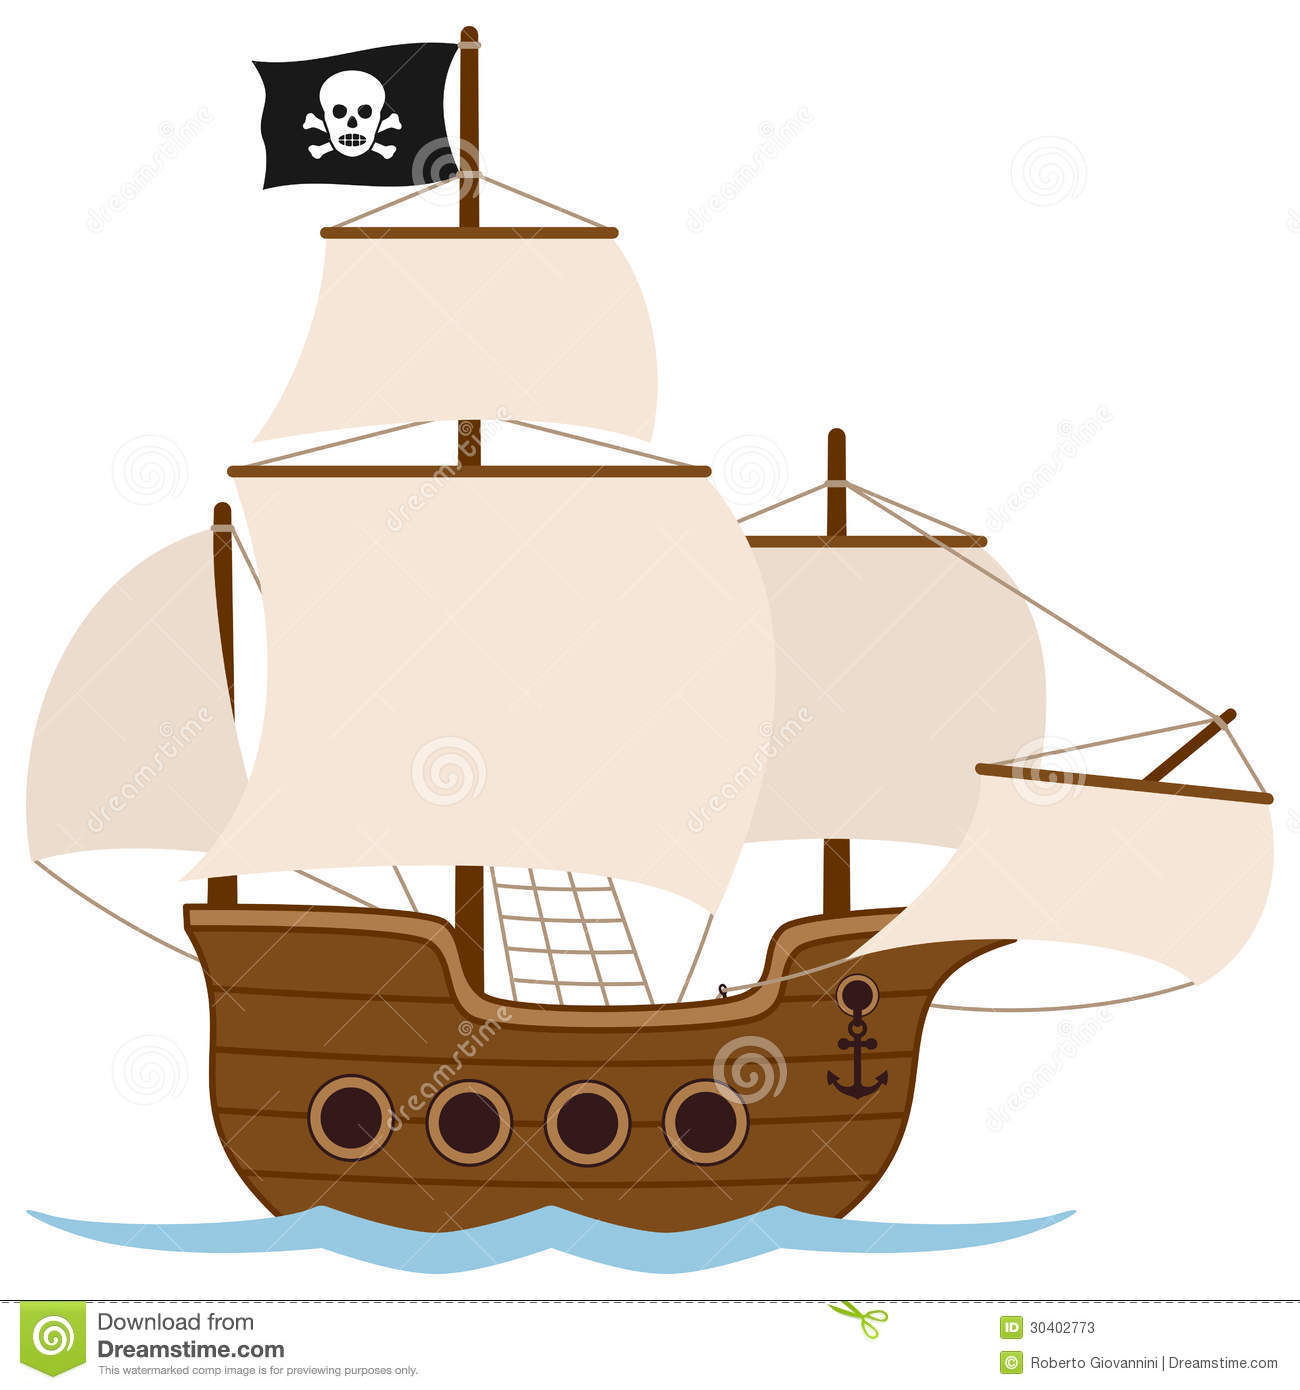 Animated pirate ships - photo#22